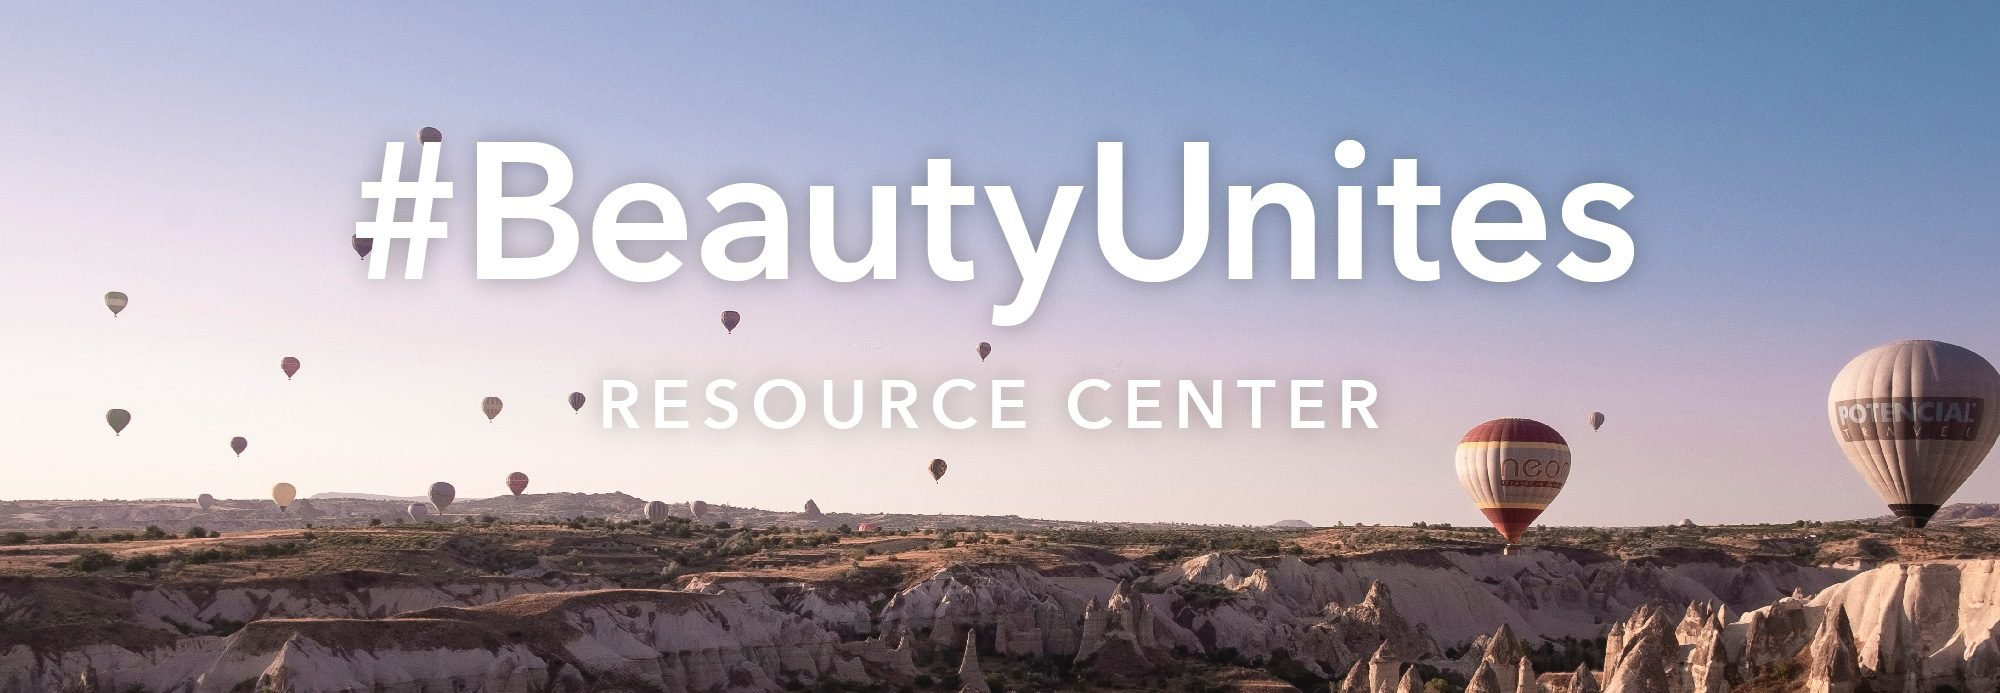 Beauty Unites Resource Center